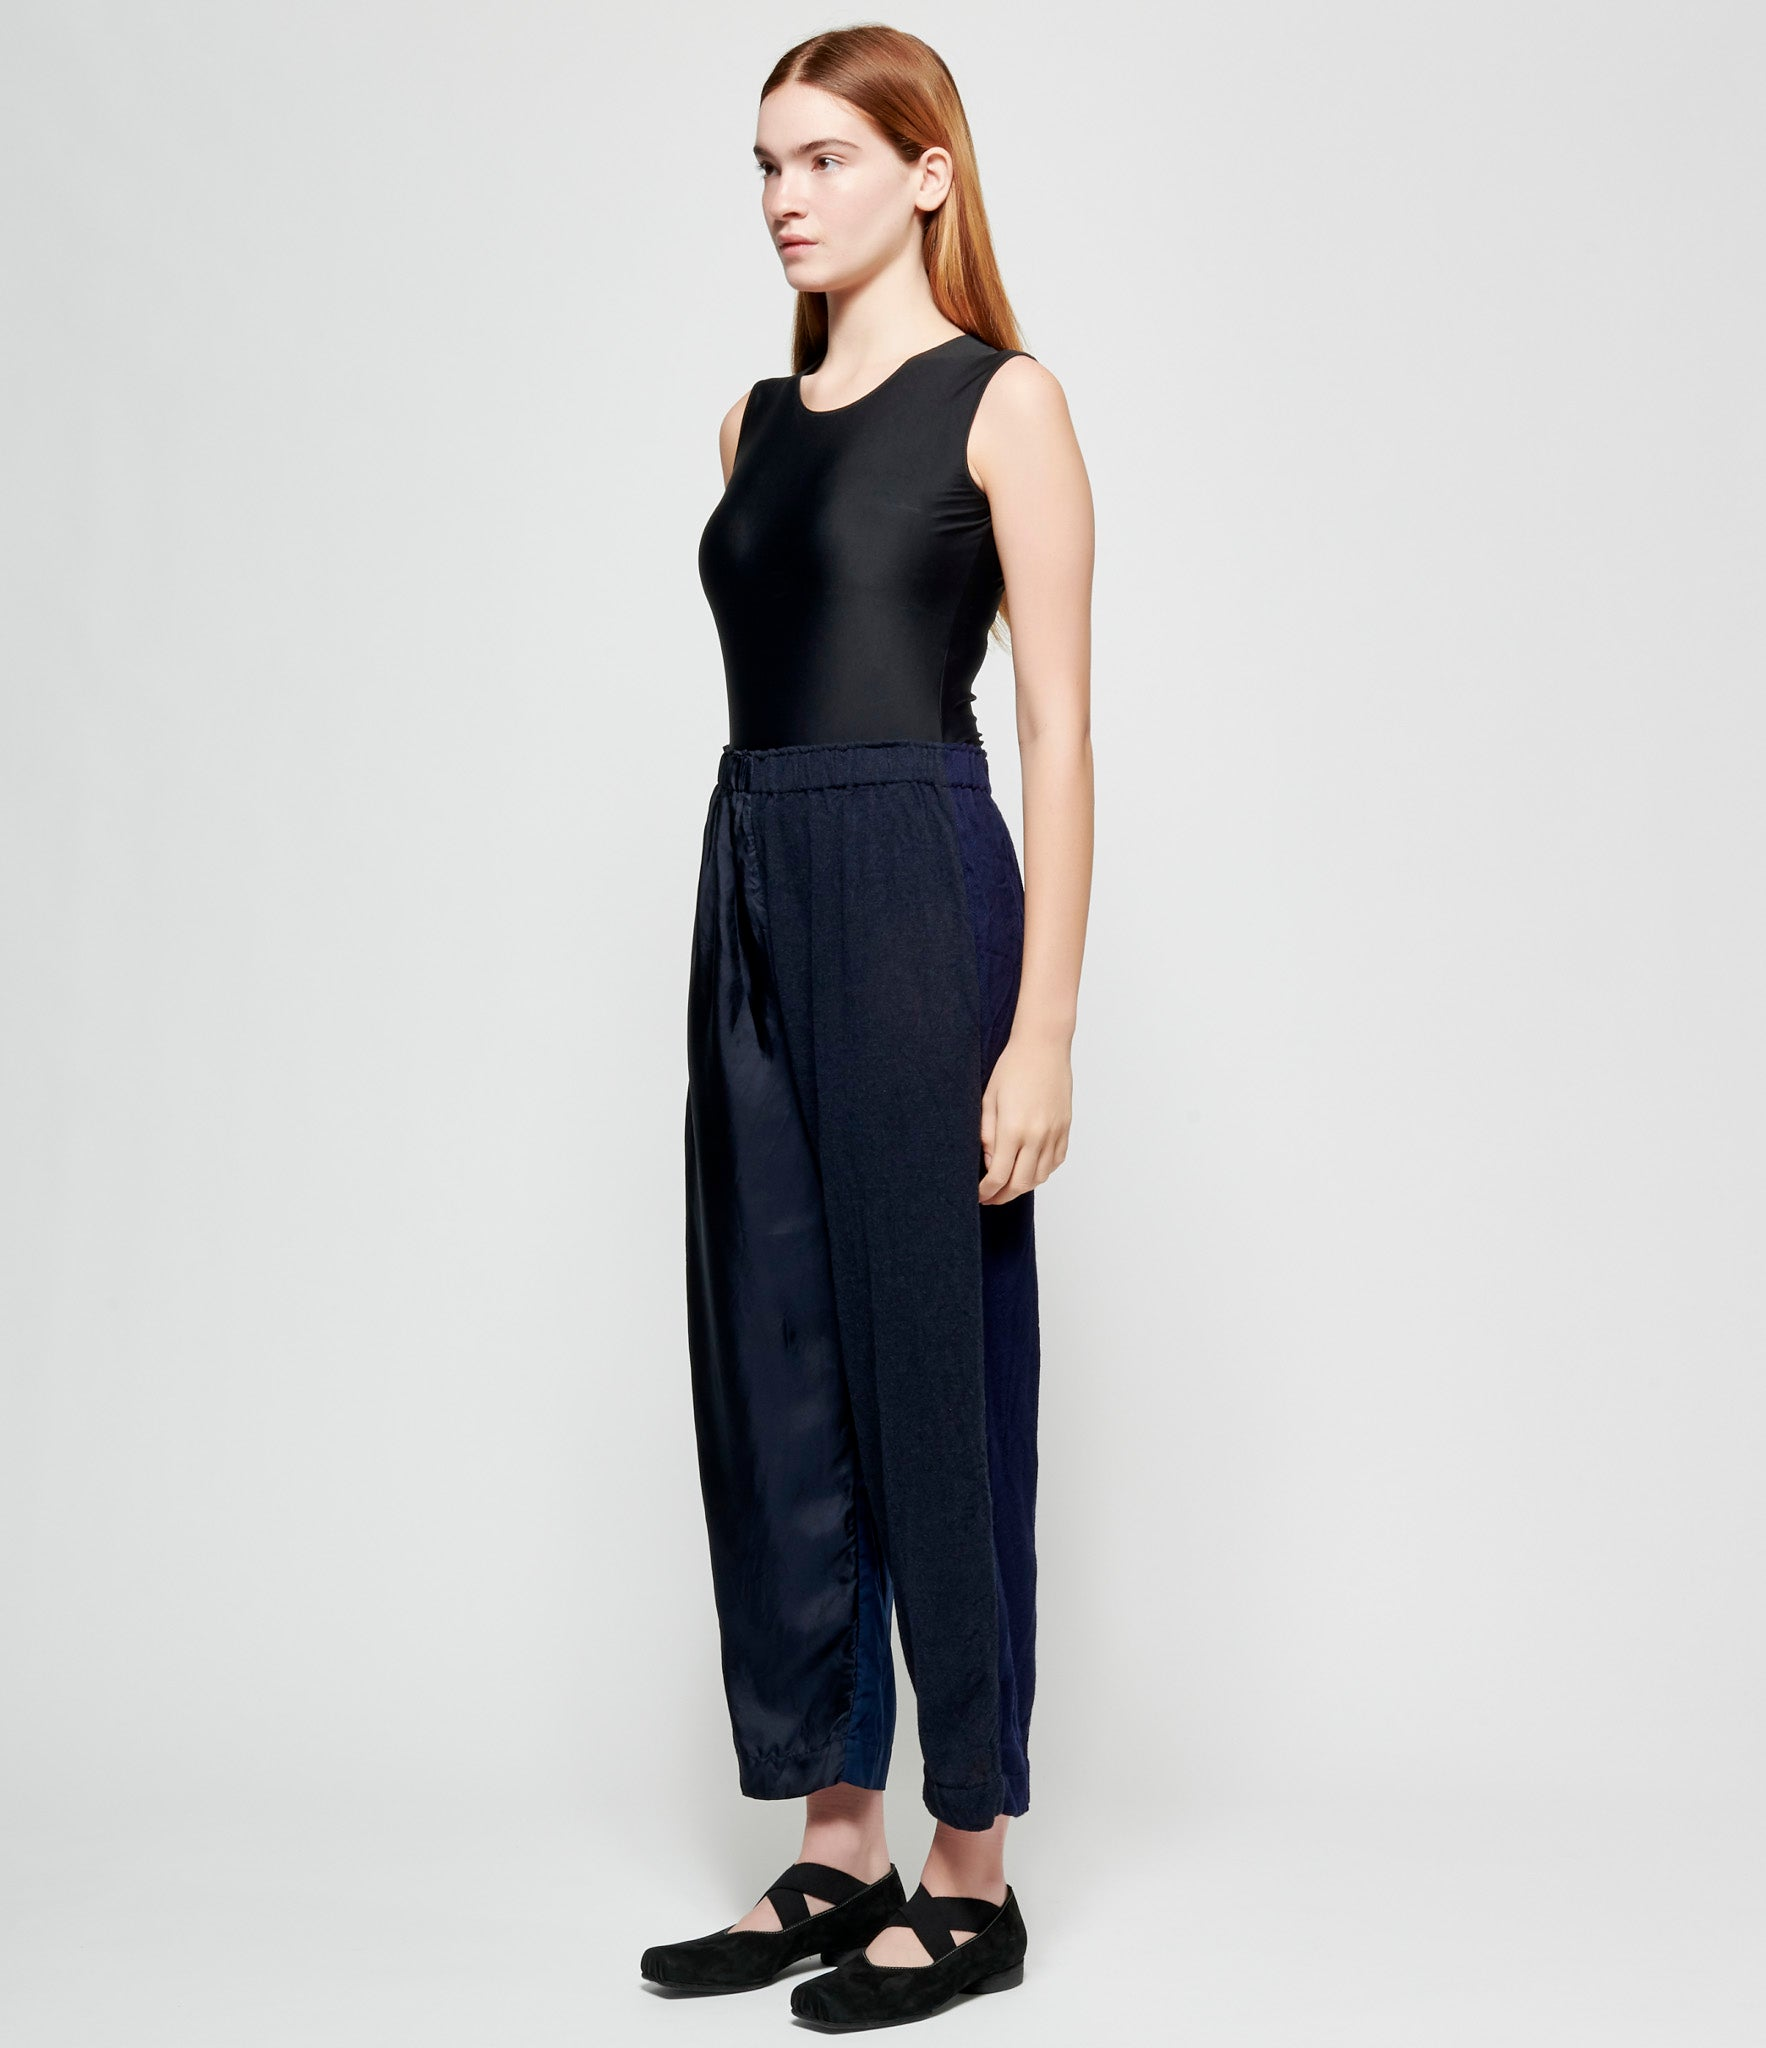 Daniela Gregis Mixed Fabric Patchwork Elastic Pants